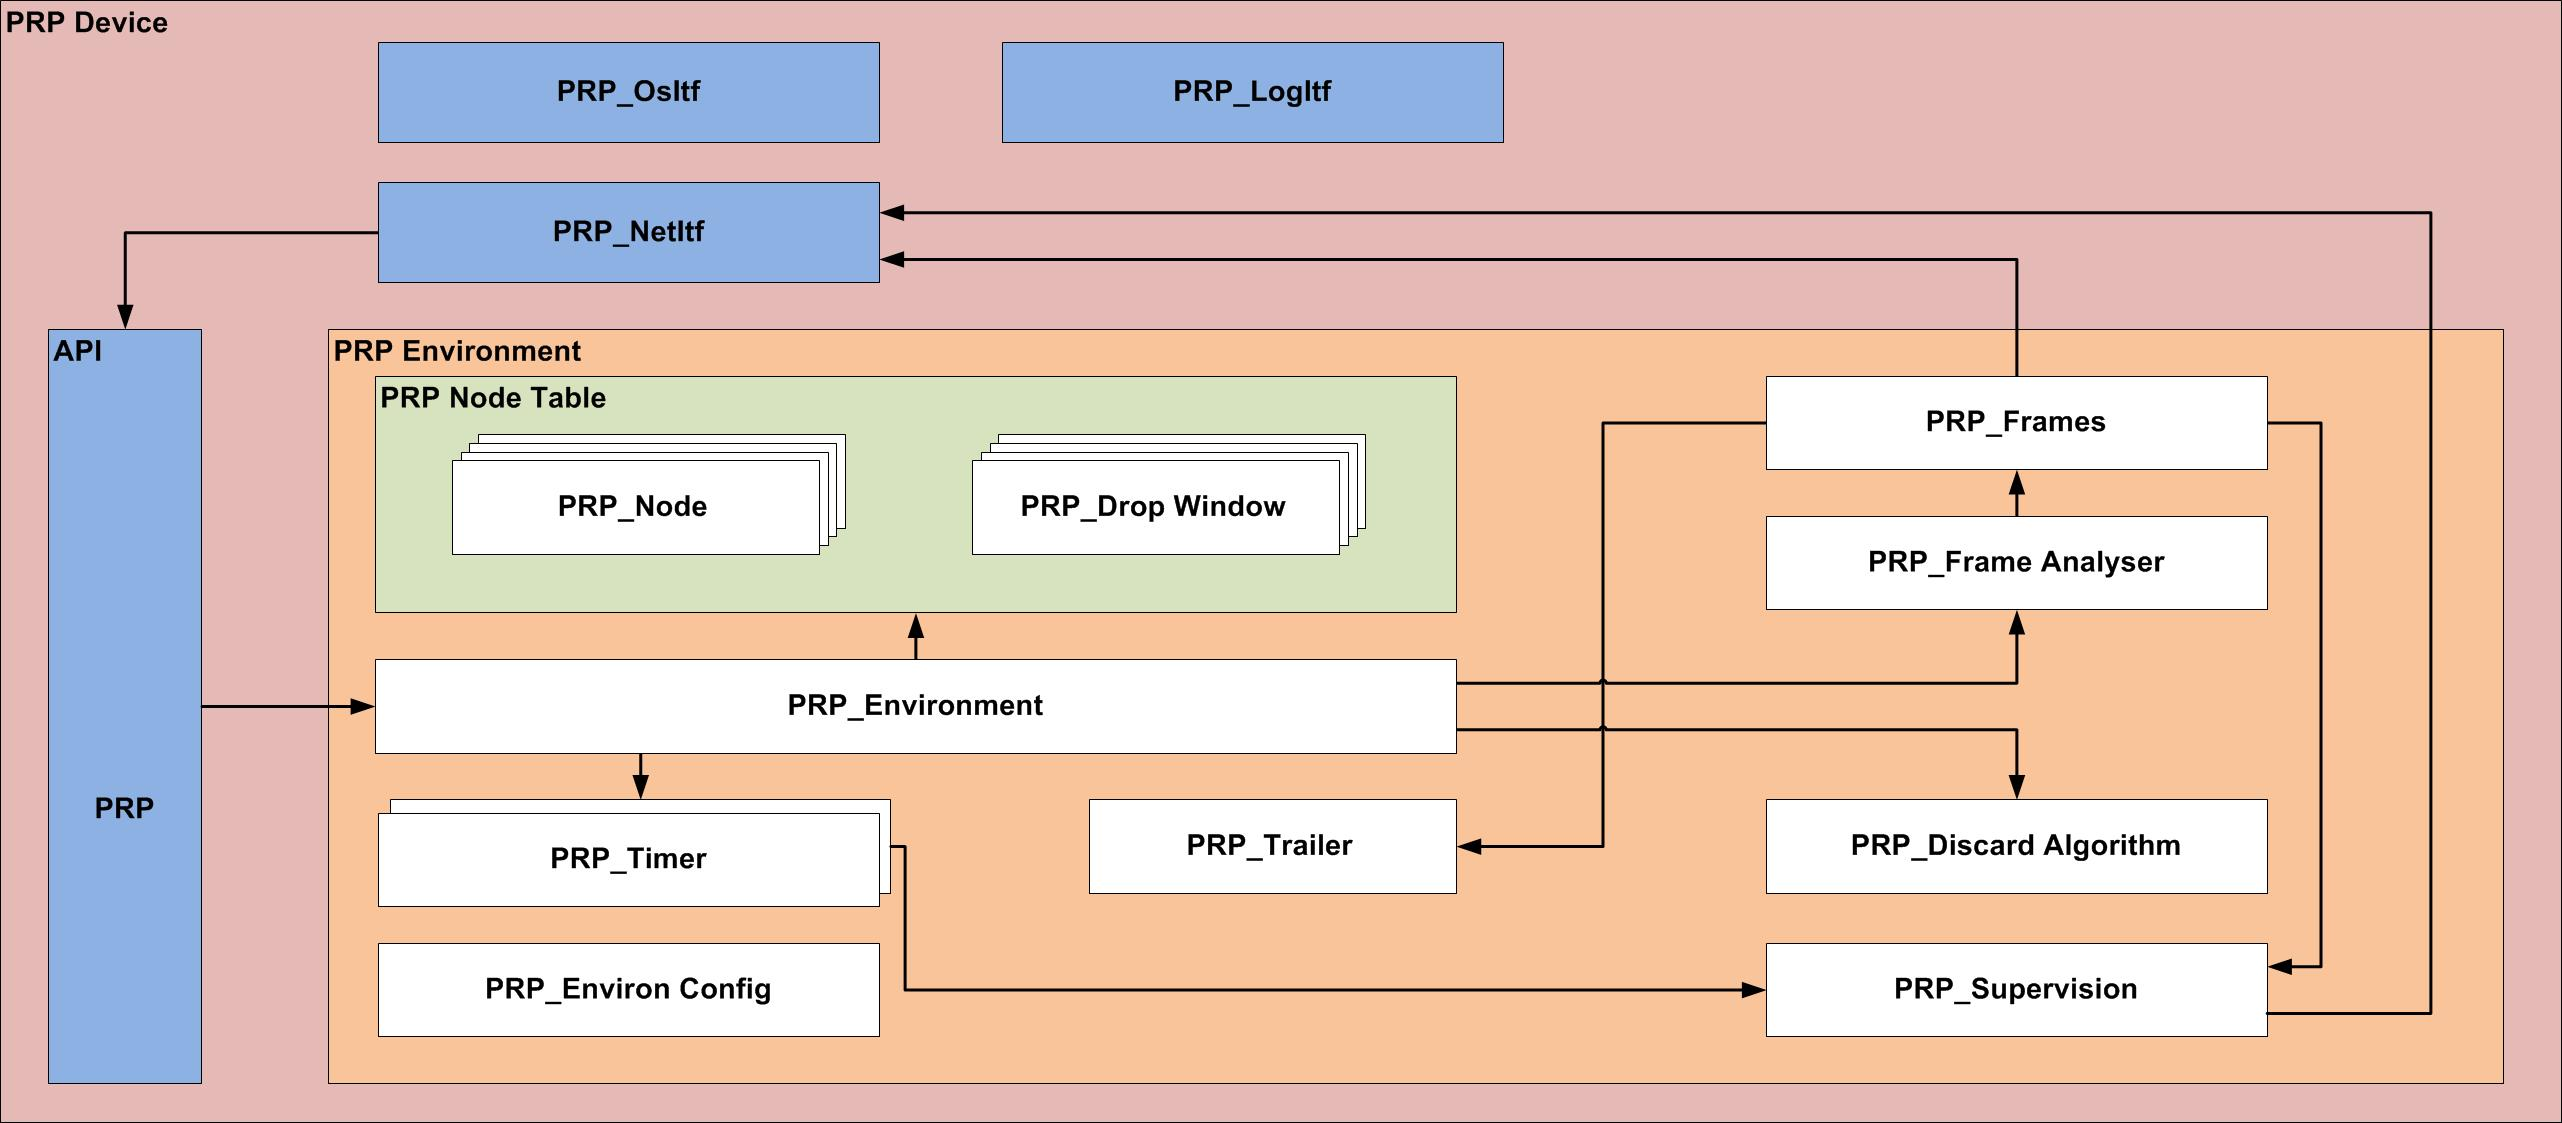 Structure of the PRP Software Stack